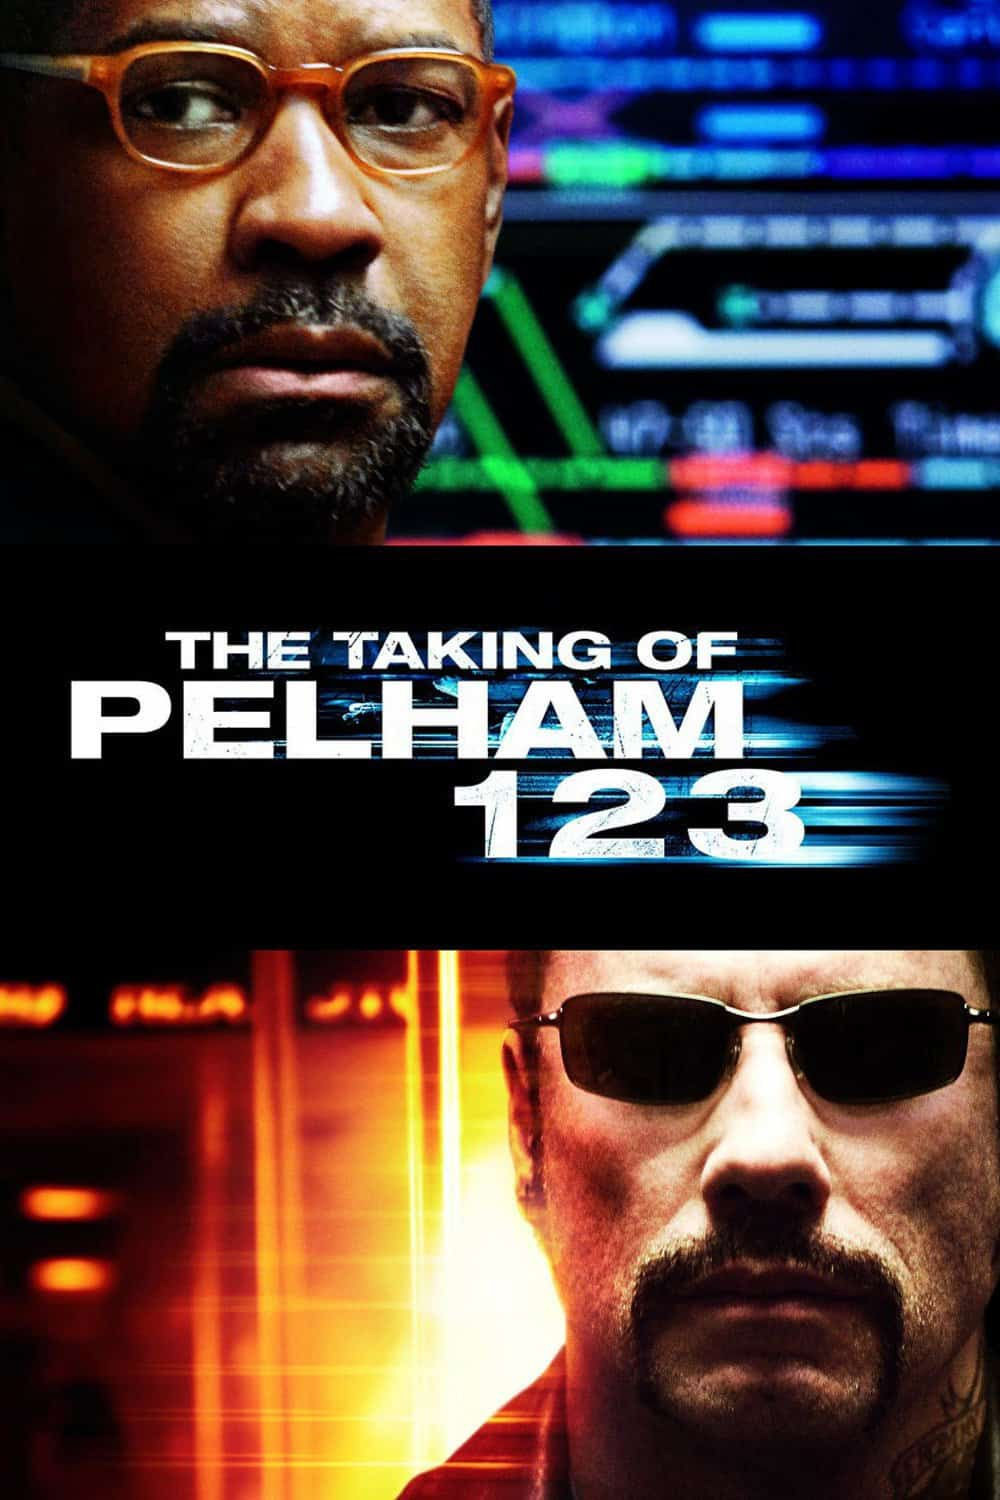 The Taking of Pelham 123, 2009